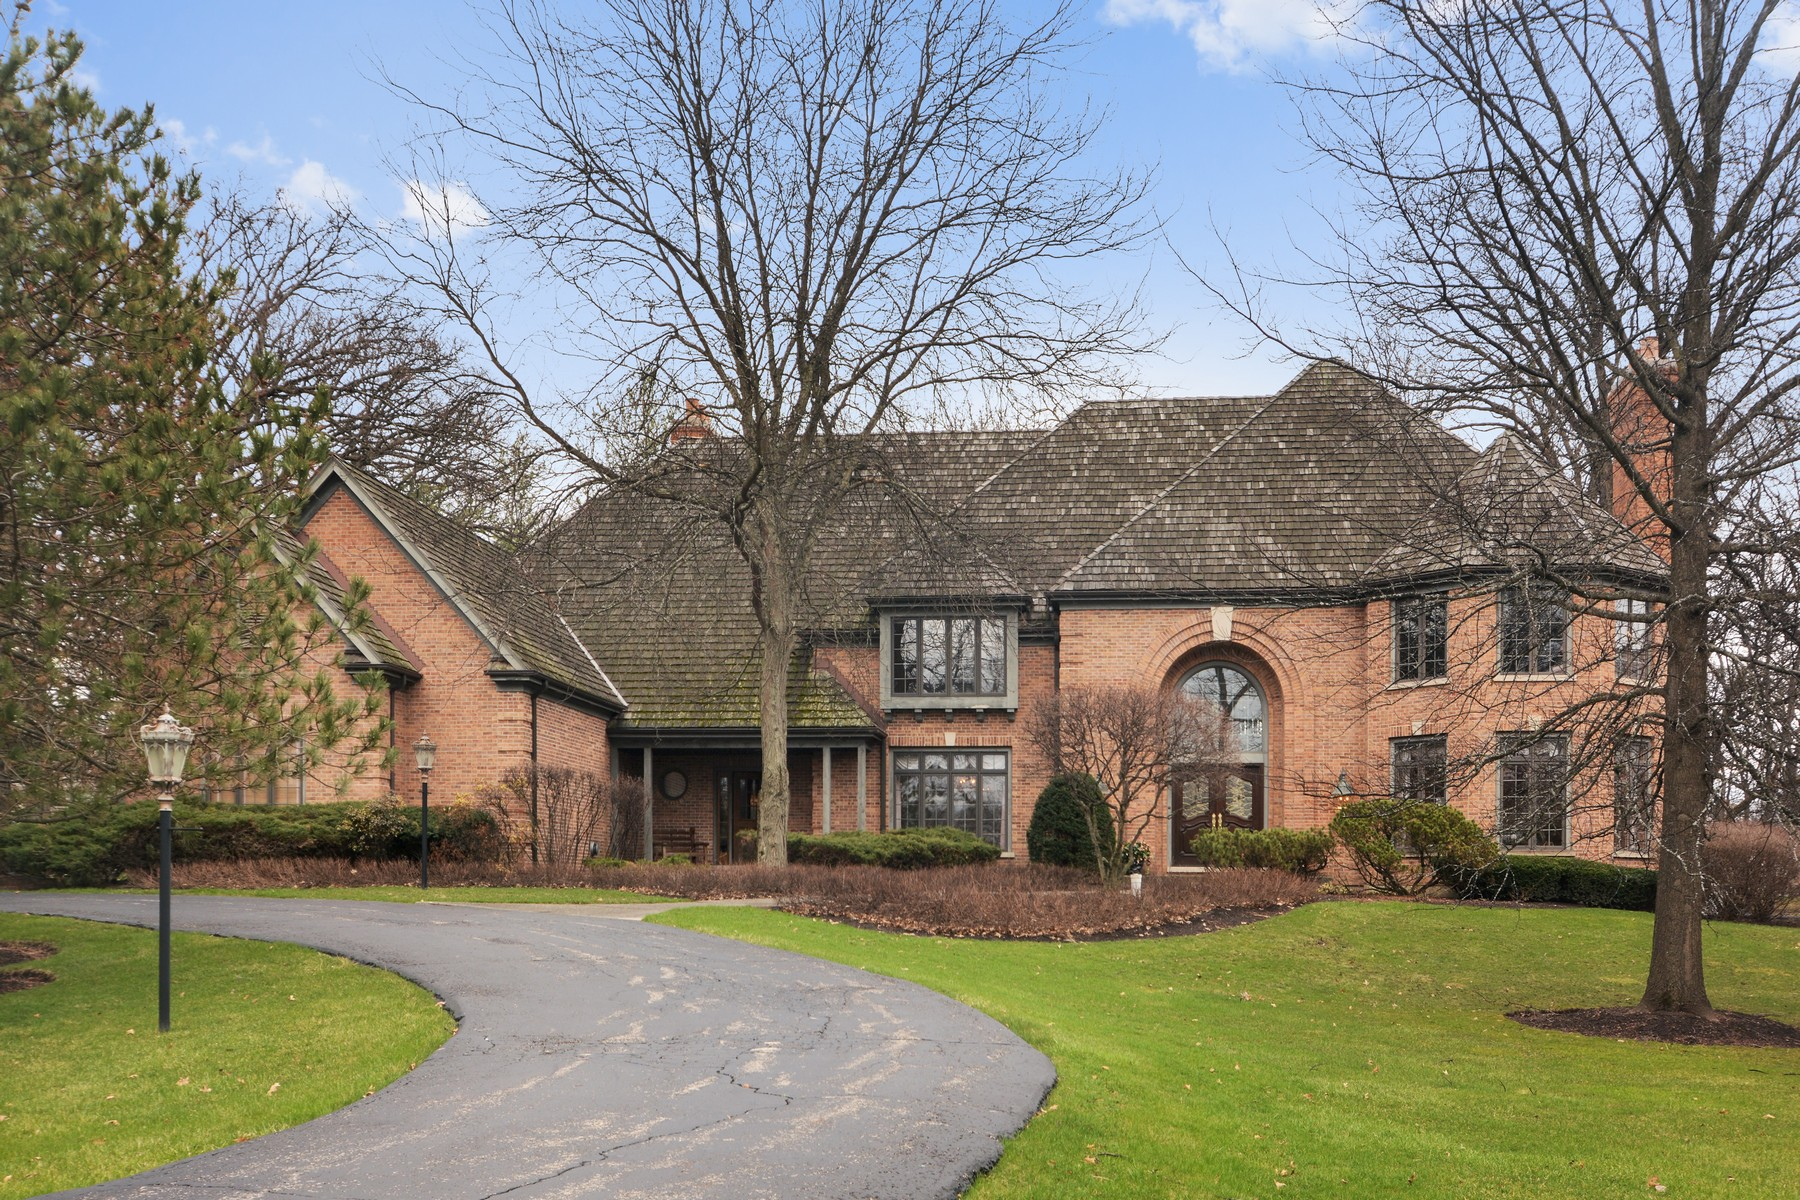 Single Family Home for Sale at North Barrington Gated Neighborhood Home 39 Castleton Court North Barrington, Illinois, 60010 United States